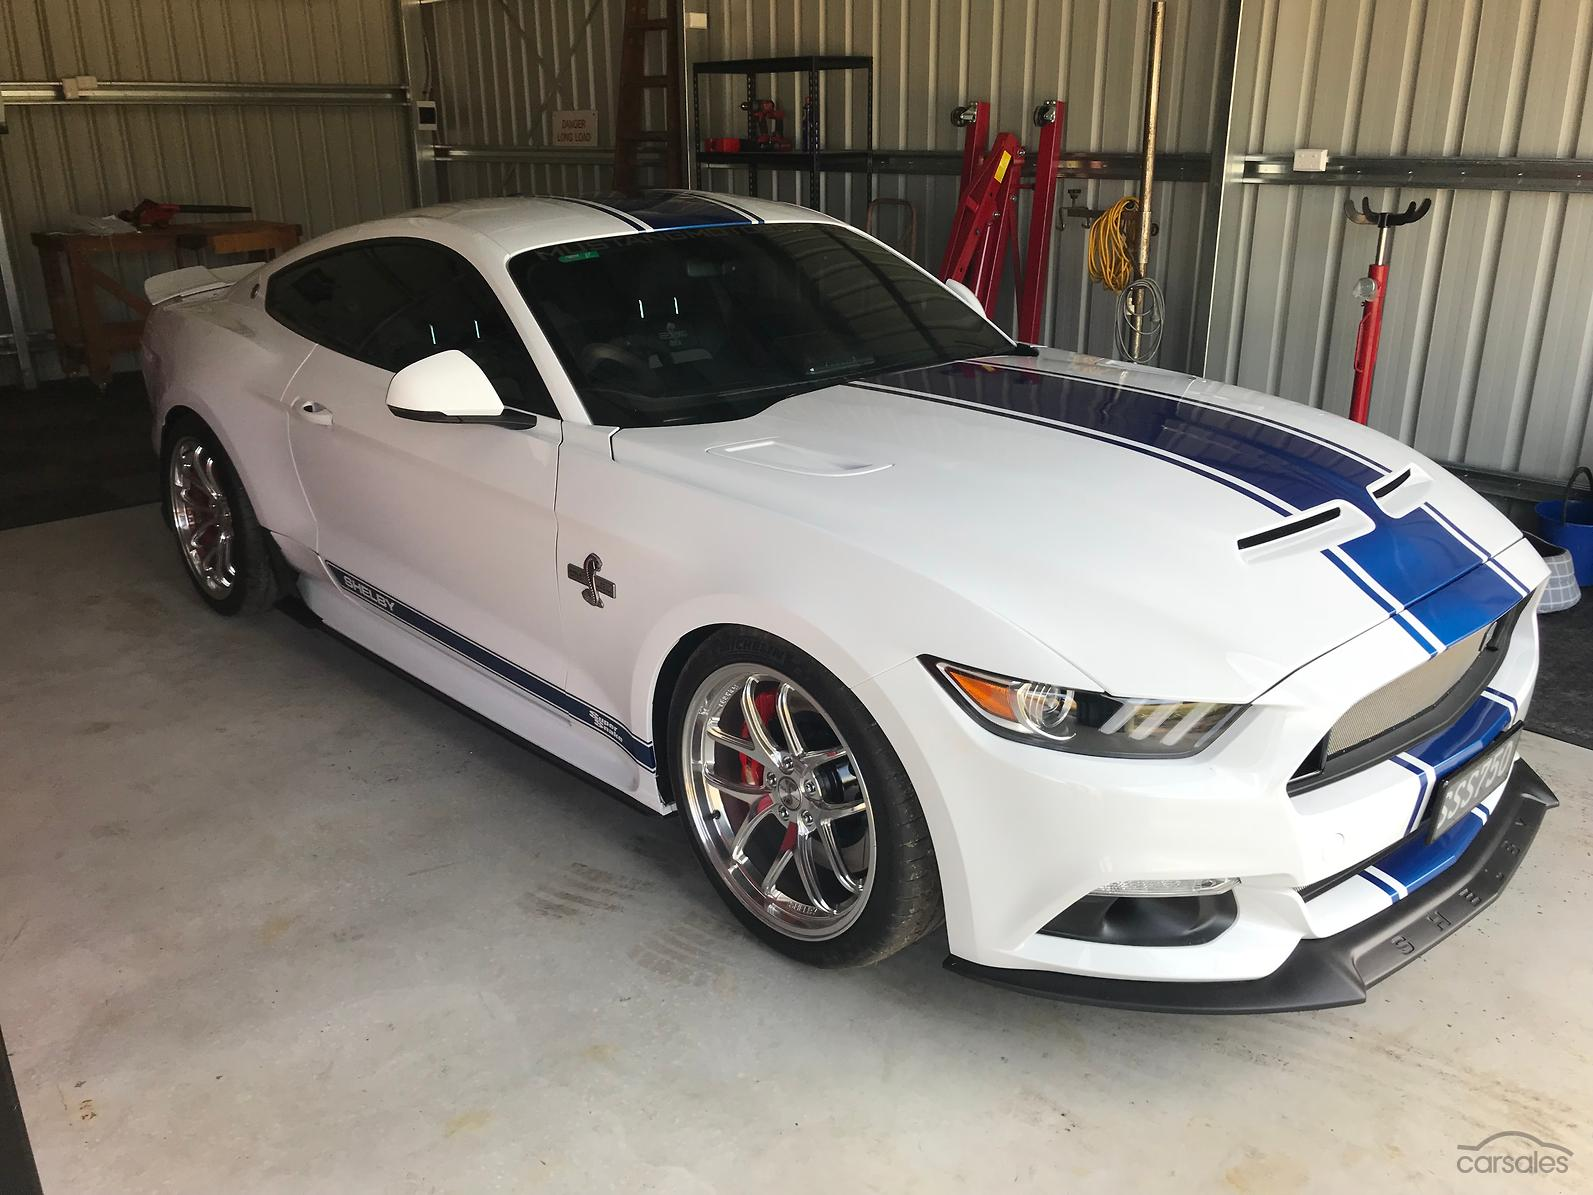 2017 ford mustang gt fm manual my17 sse ad 6215551 carsales com au